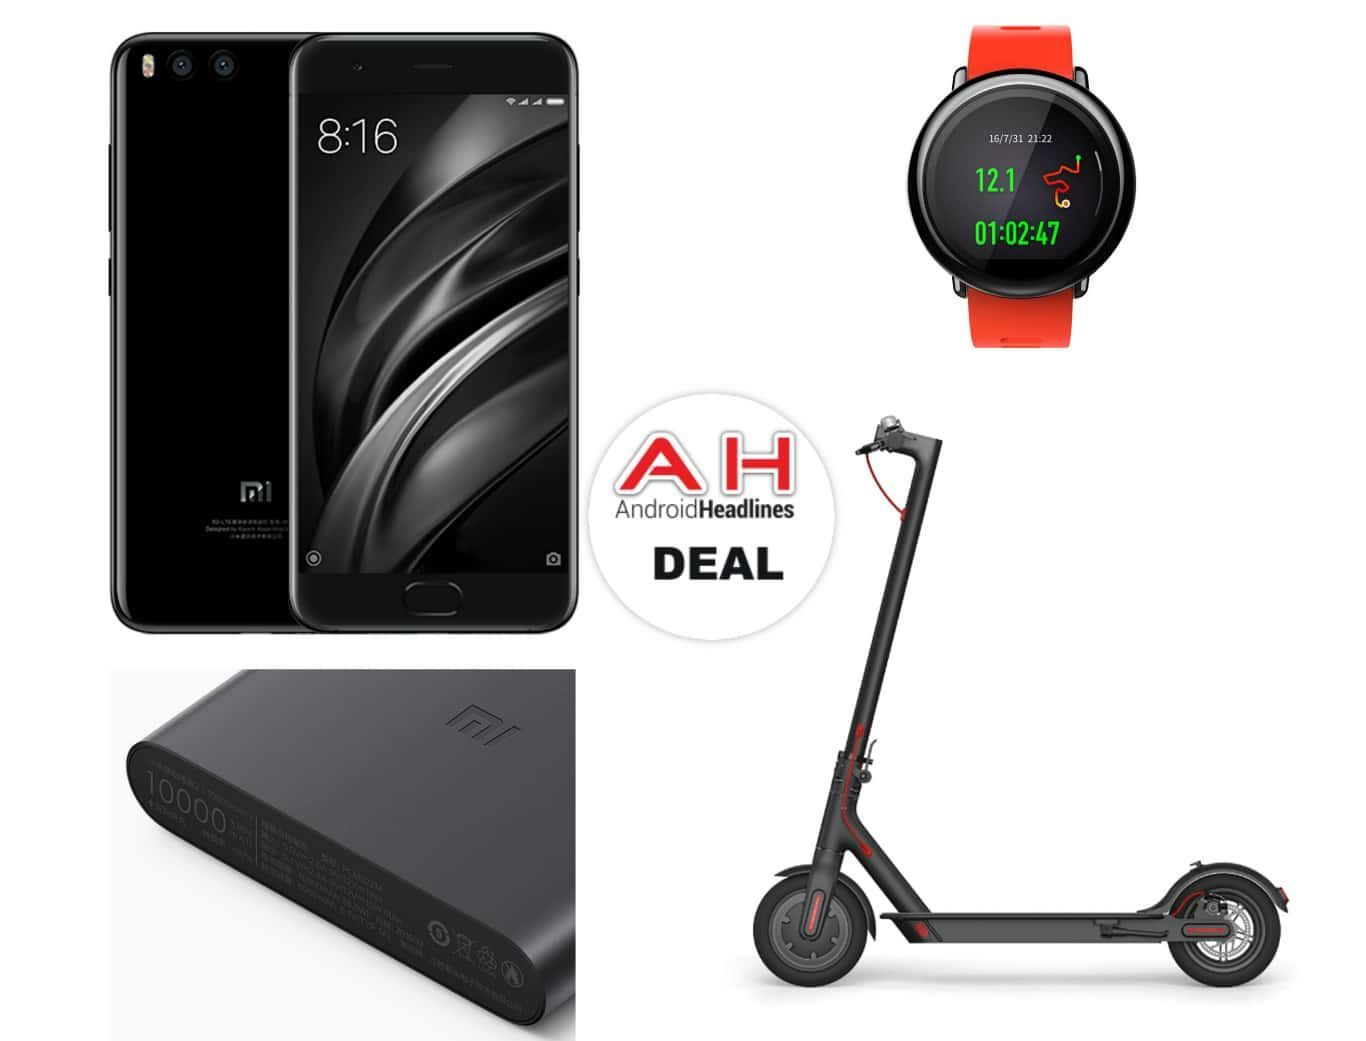 Tomtop: Save Big On The Xiaomi Mi 6, Electric Scooter